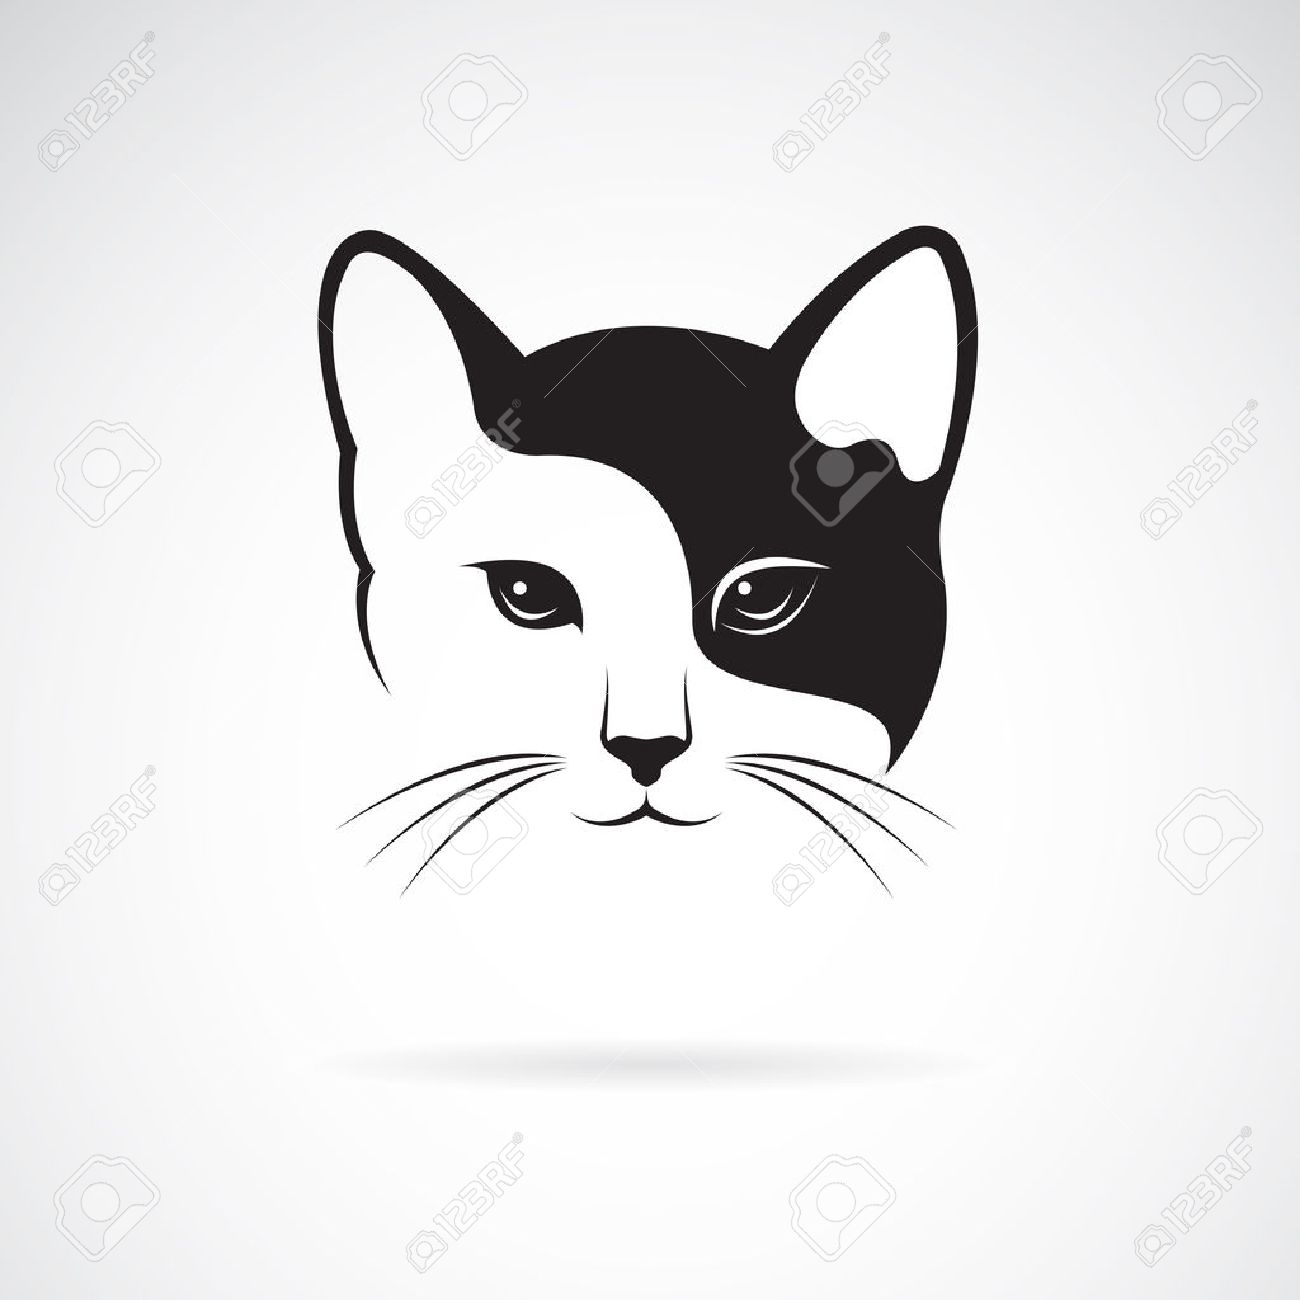 Vector image of an cat face design on white background. - 55619539